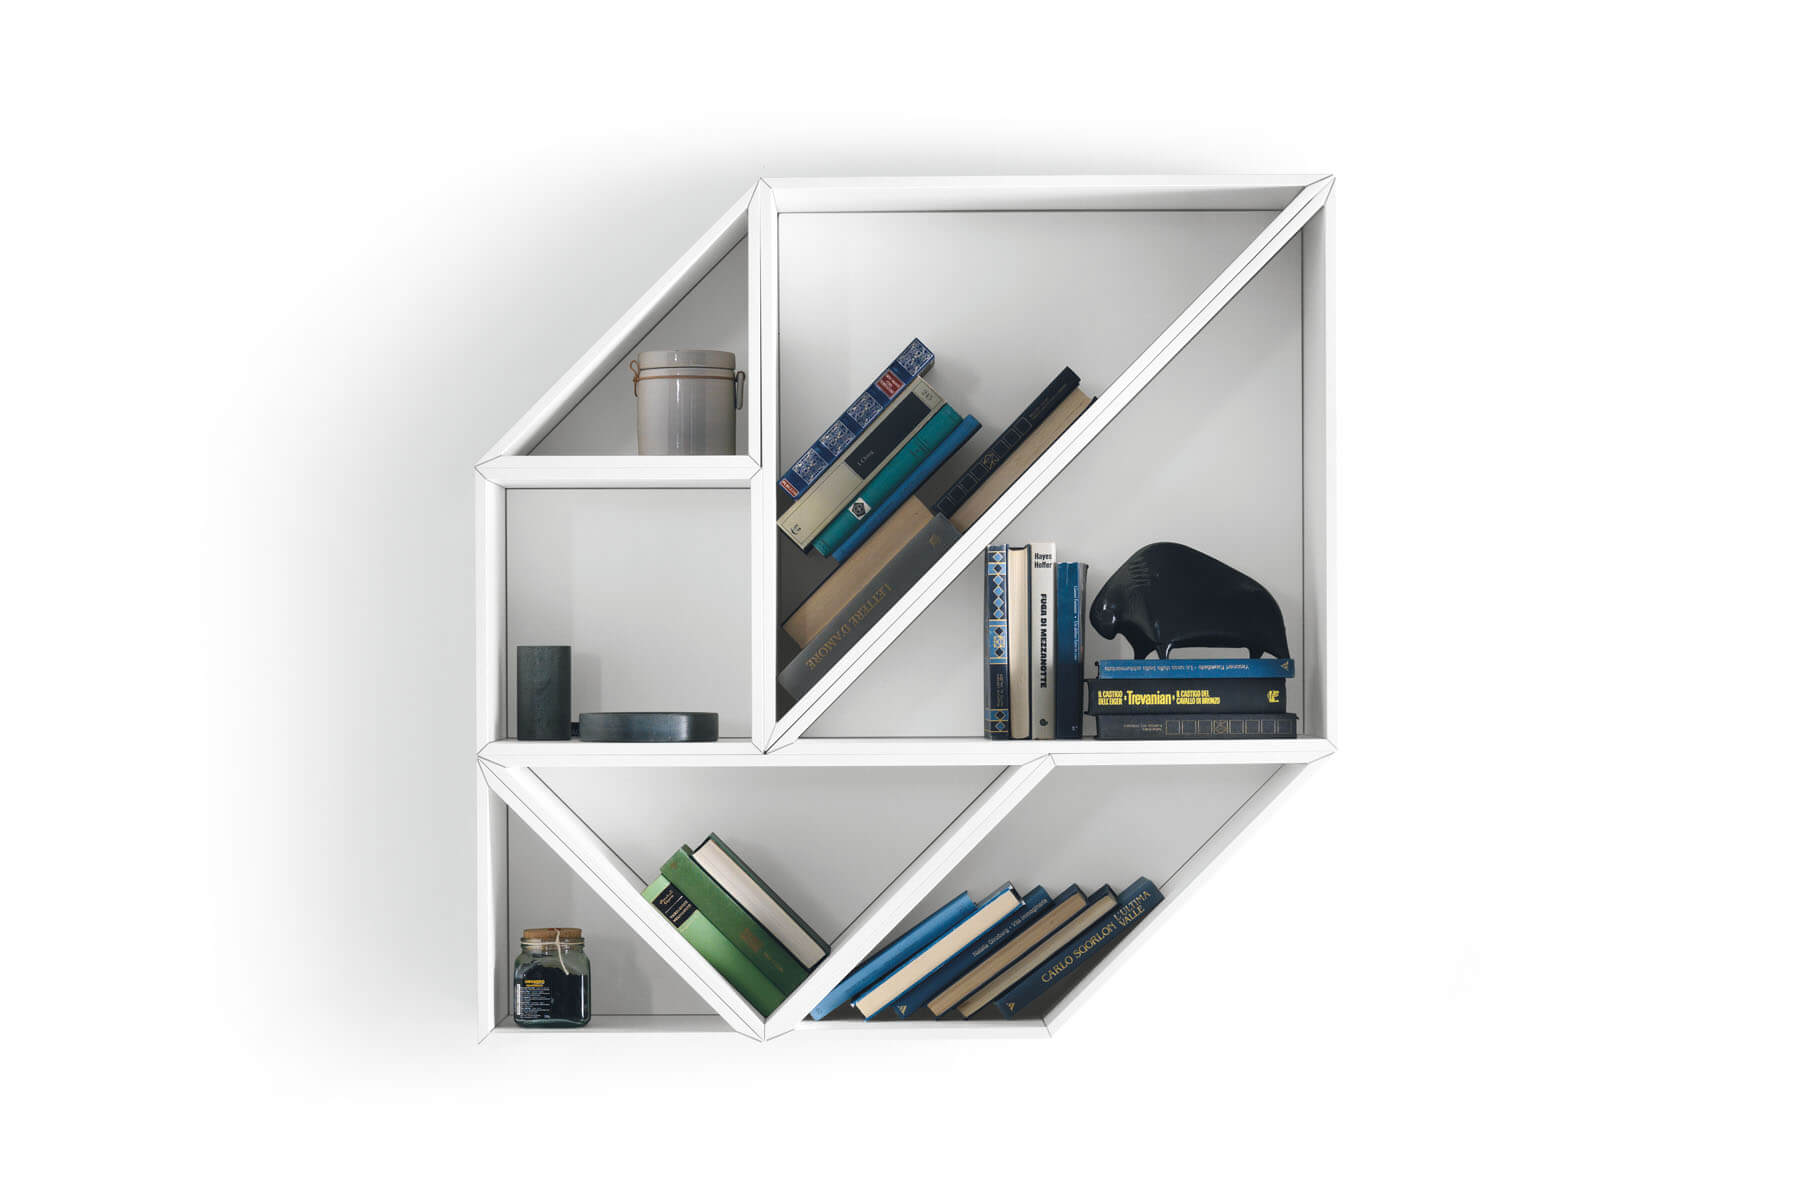 Tangram Shelving Modular Shelving That You Can Configure